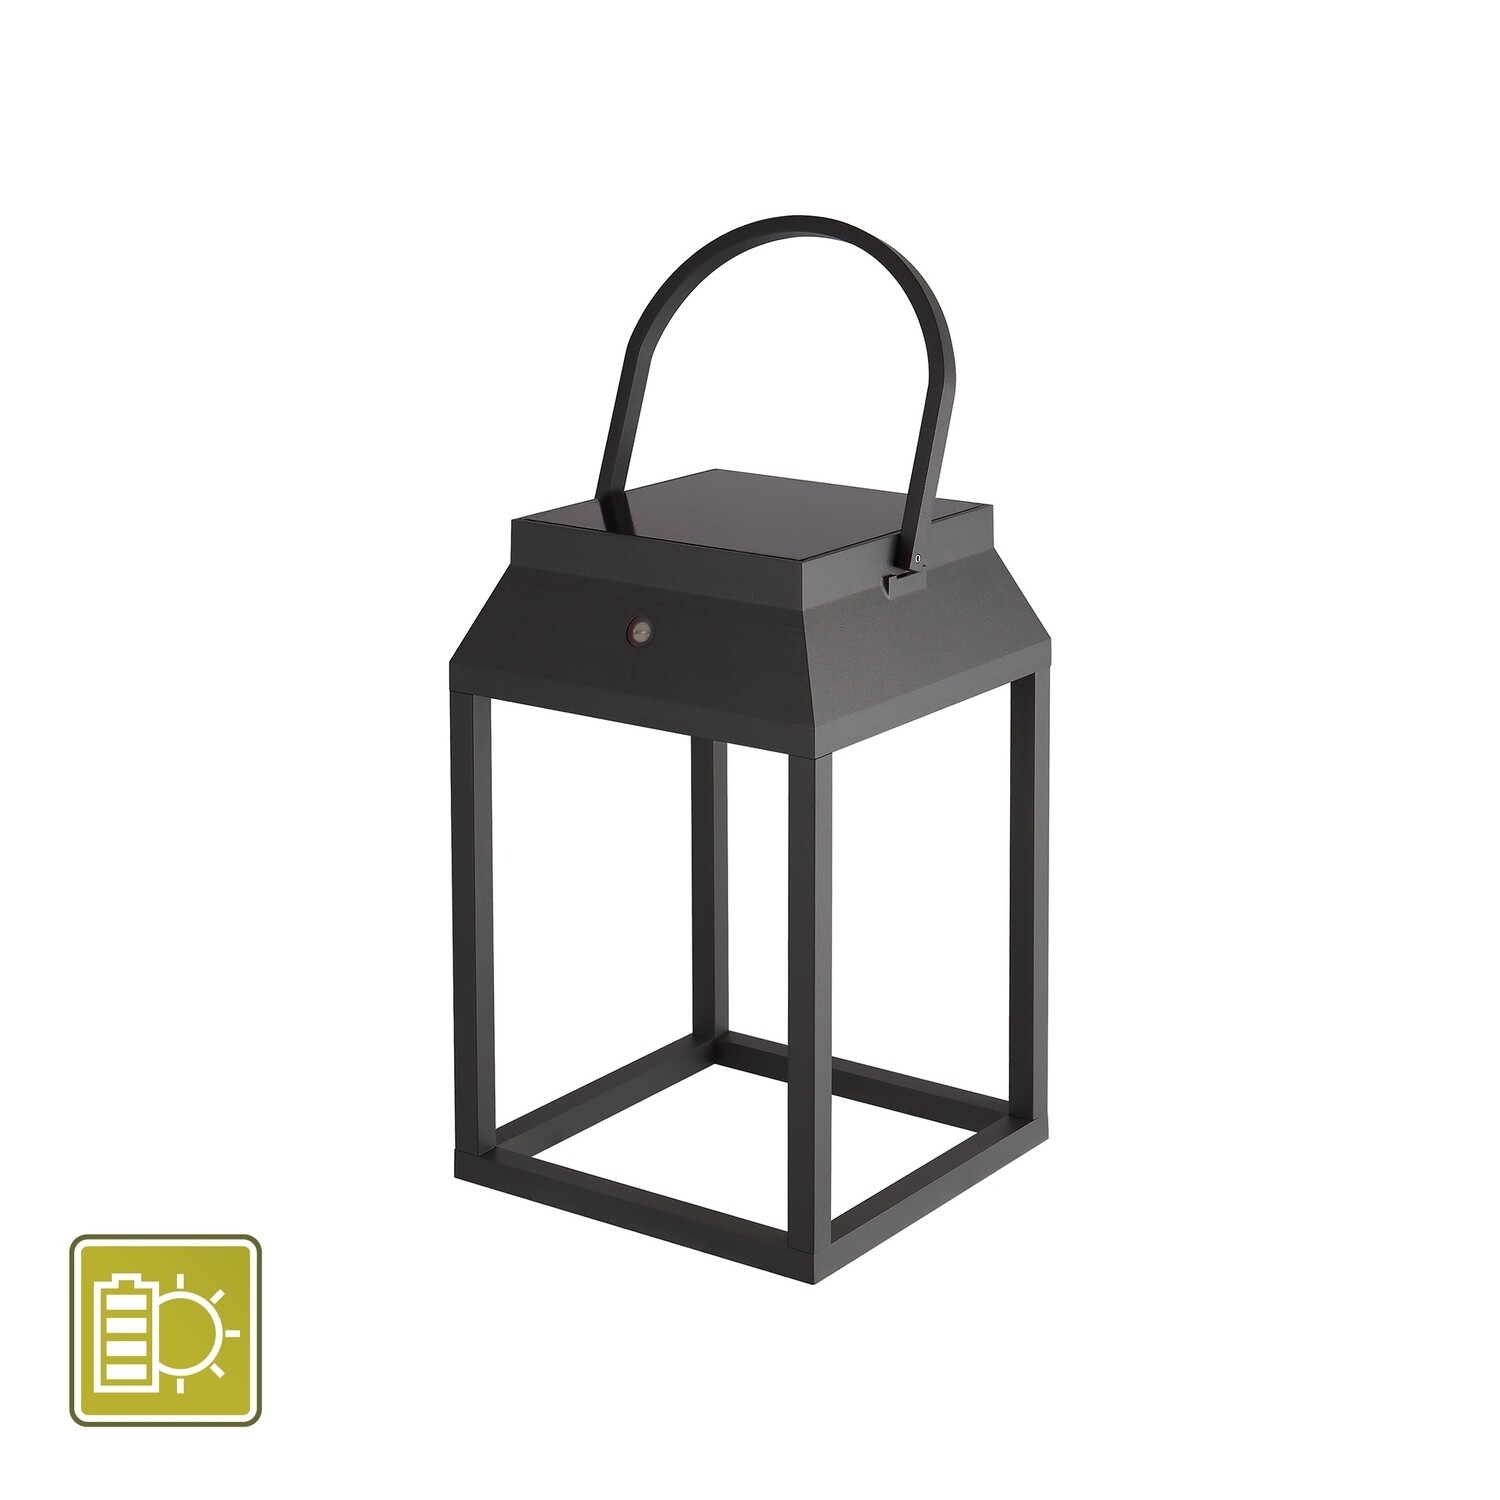 Sapporo Small Solar Portable Lantern, 3W LED, 3000K, 238lm, IP54, Graphite